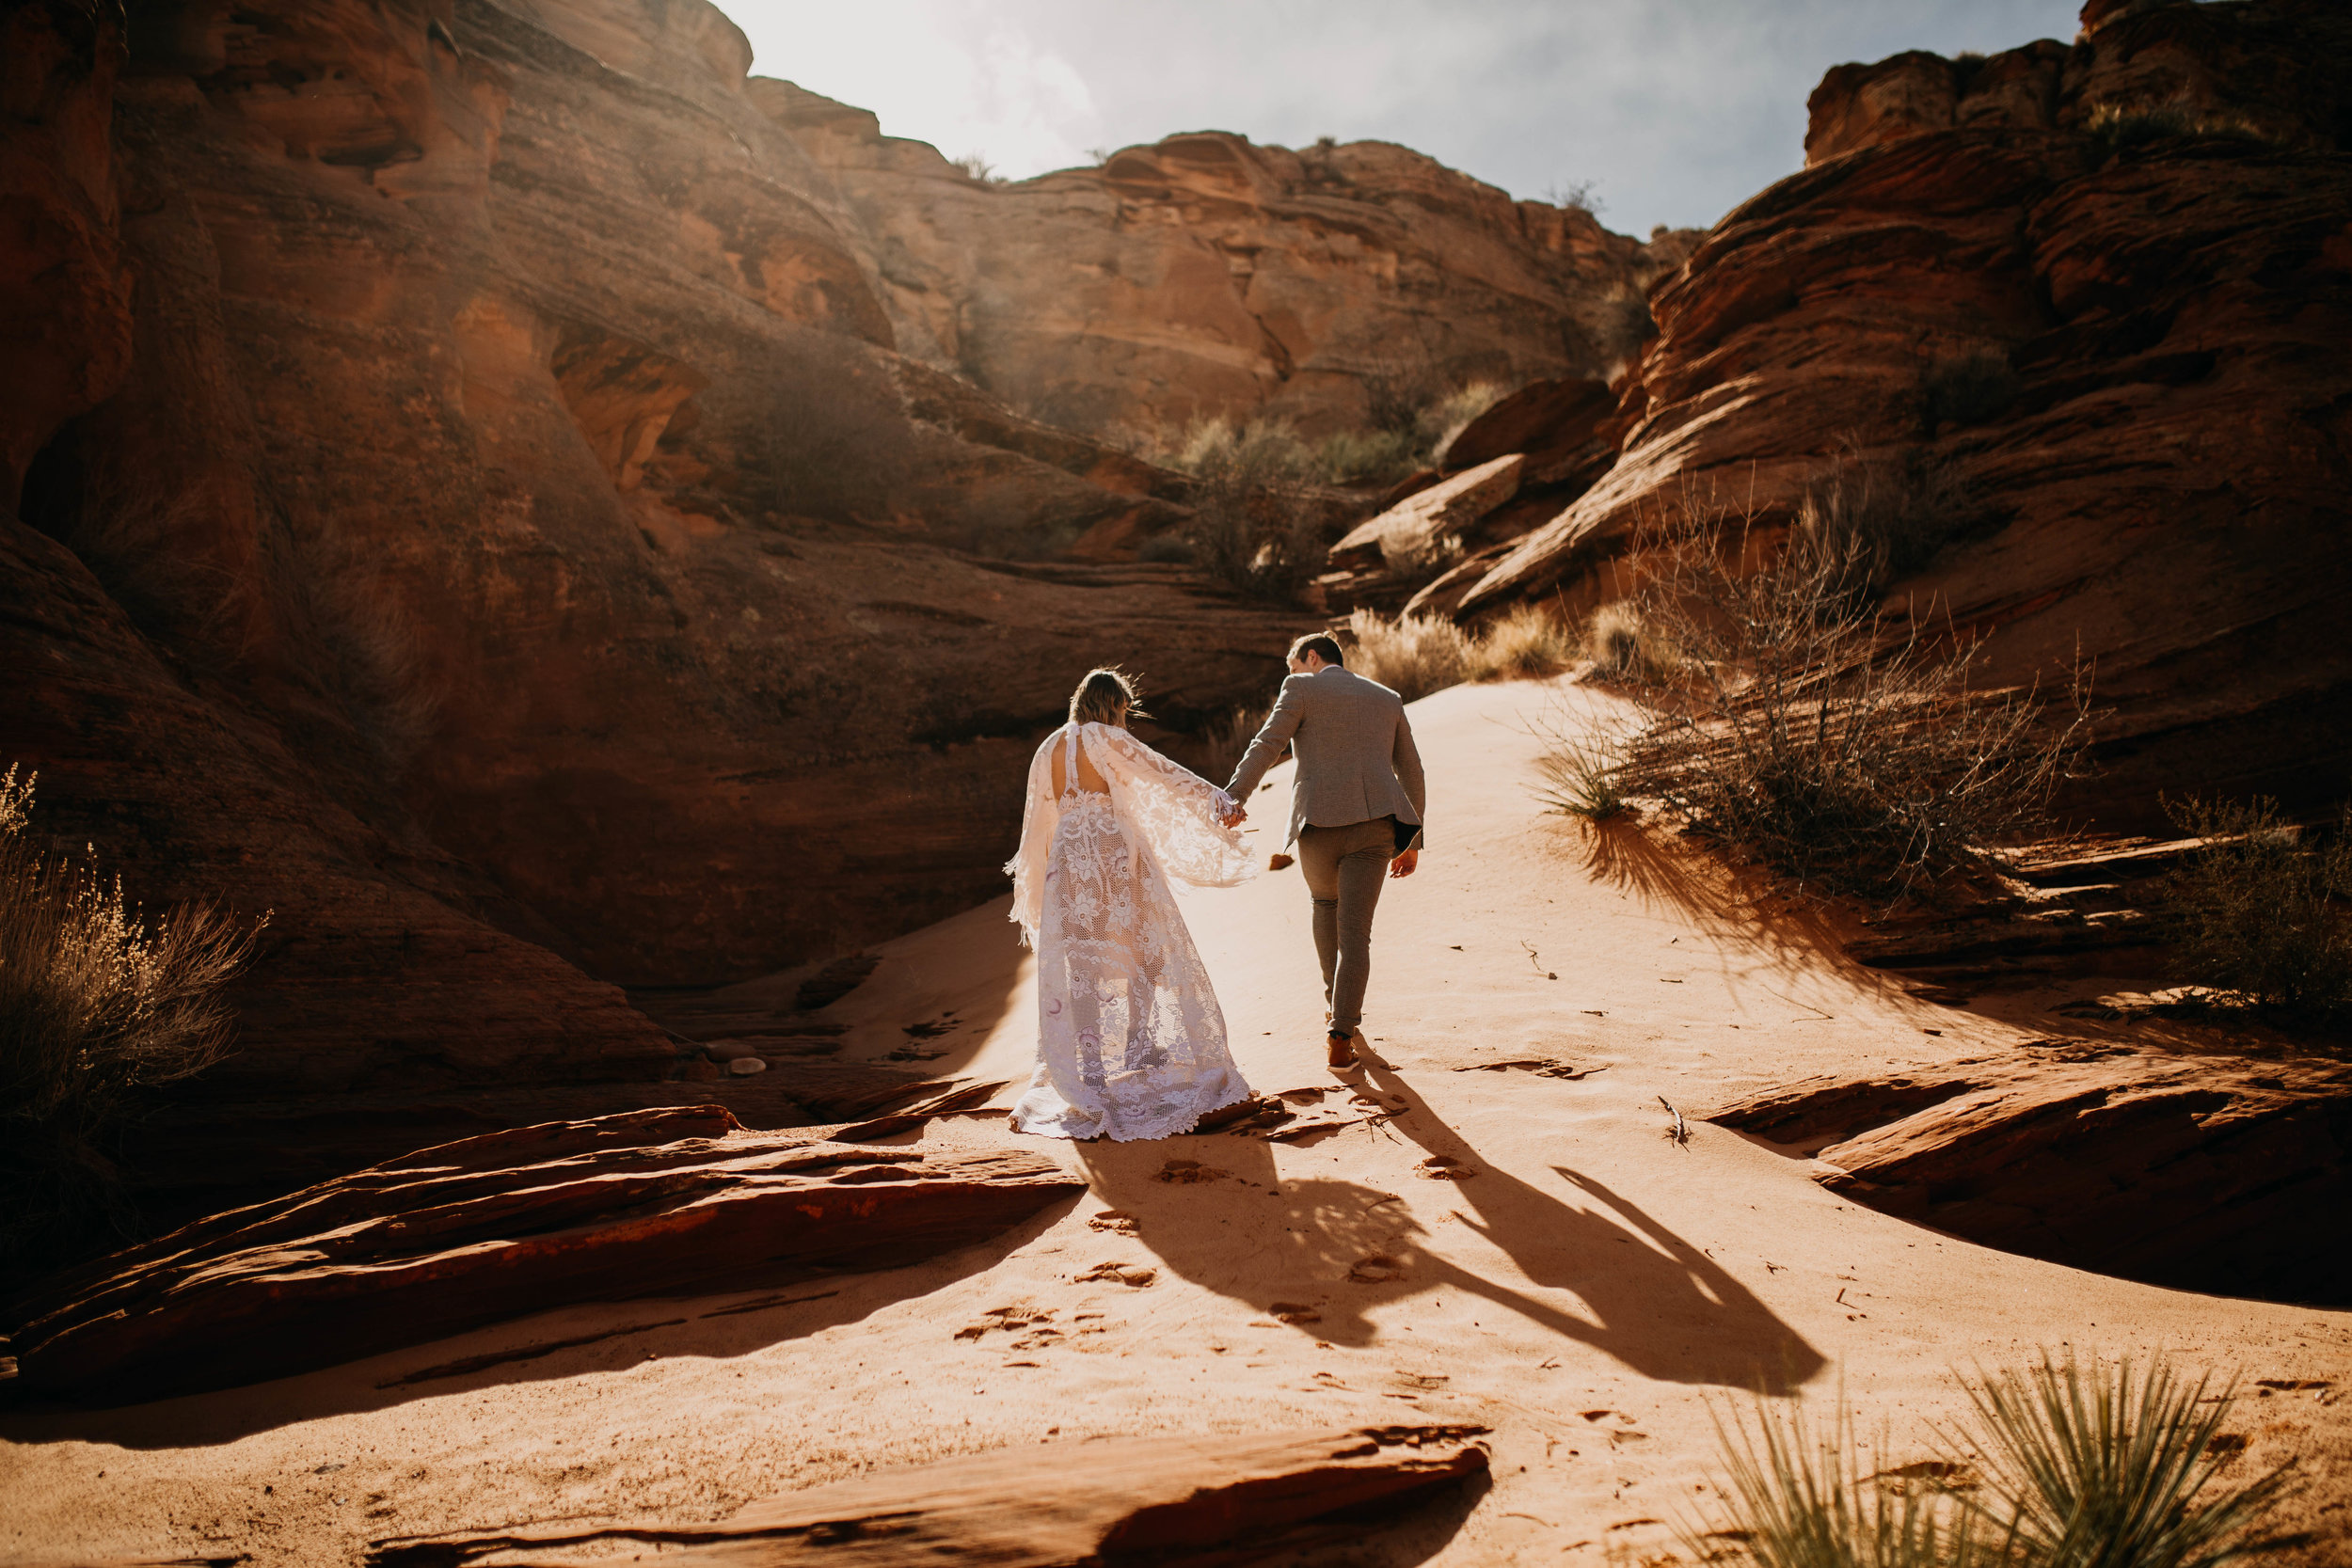 Arizona Desert Slot Canyon Elopement